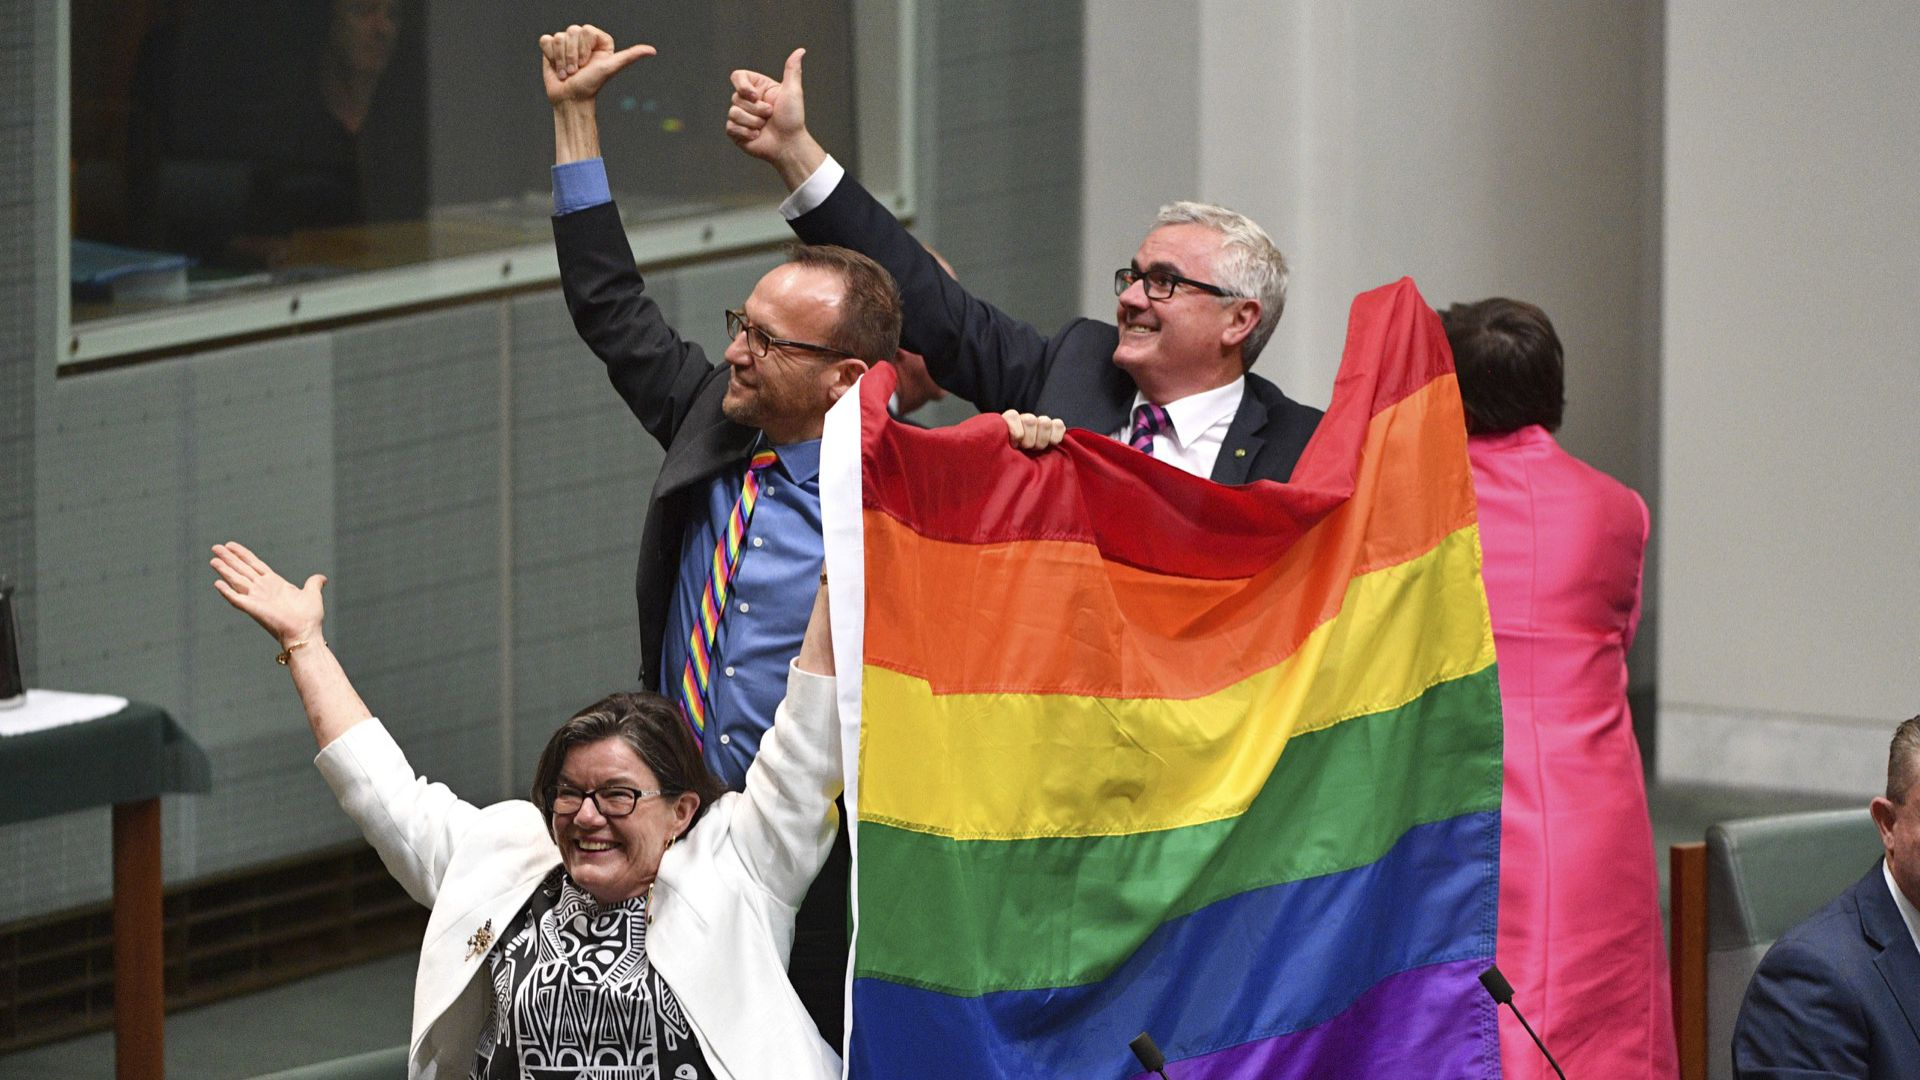 Australian MPs celebrate the same-sex marriage vote